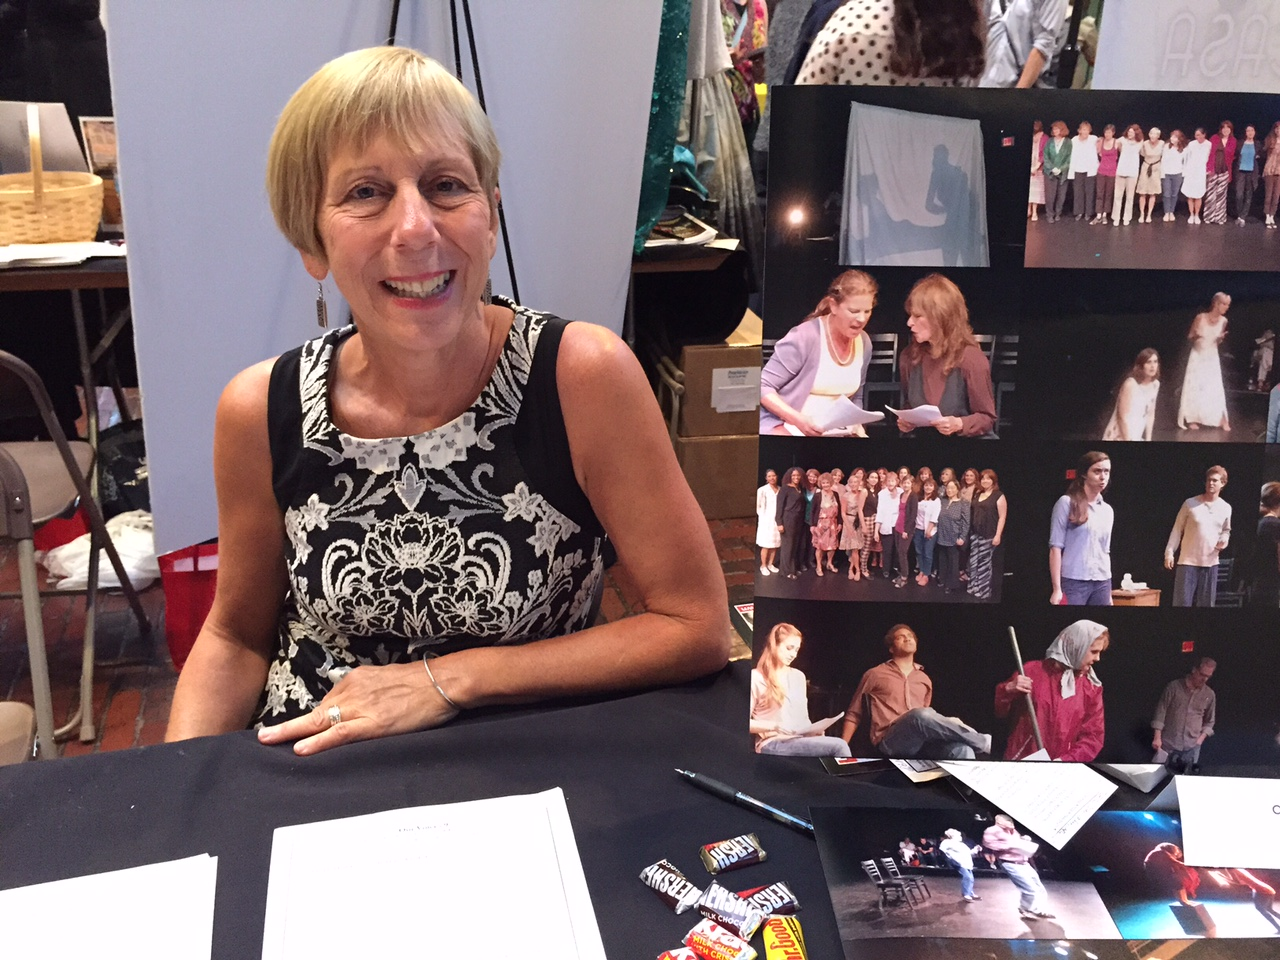 Kelly at THEATRE EXPO 2015.JPG